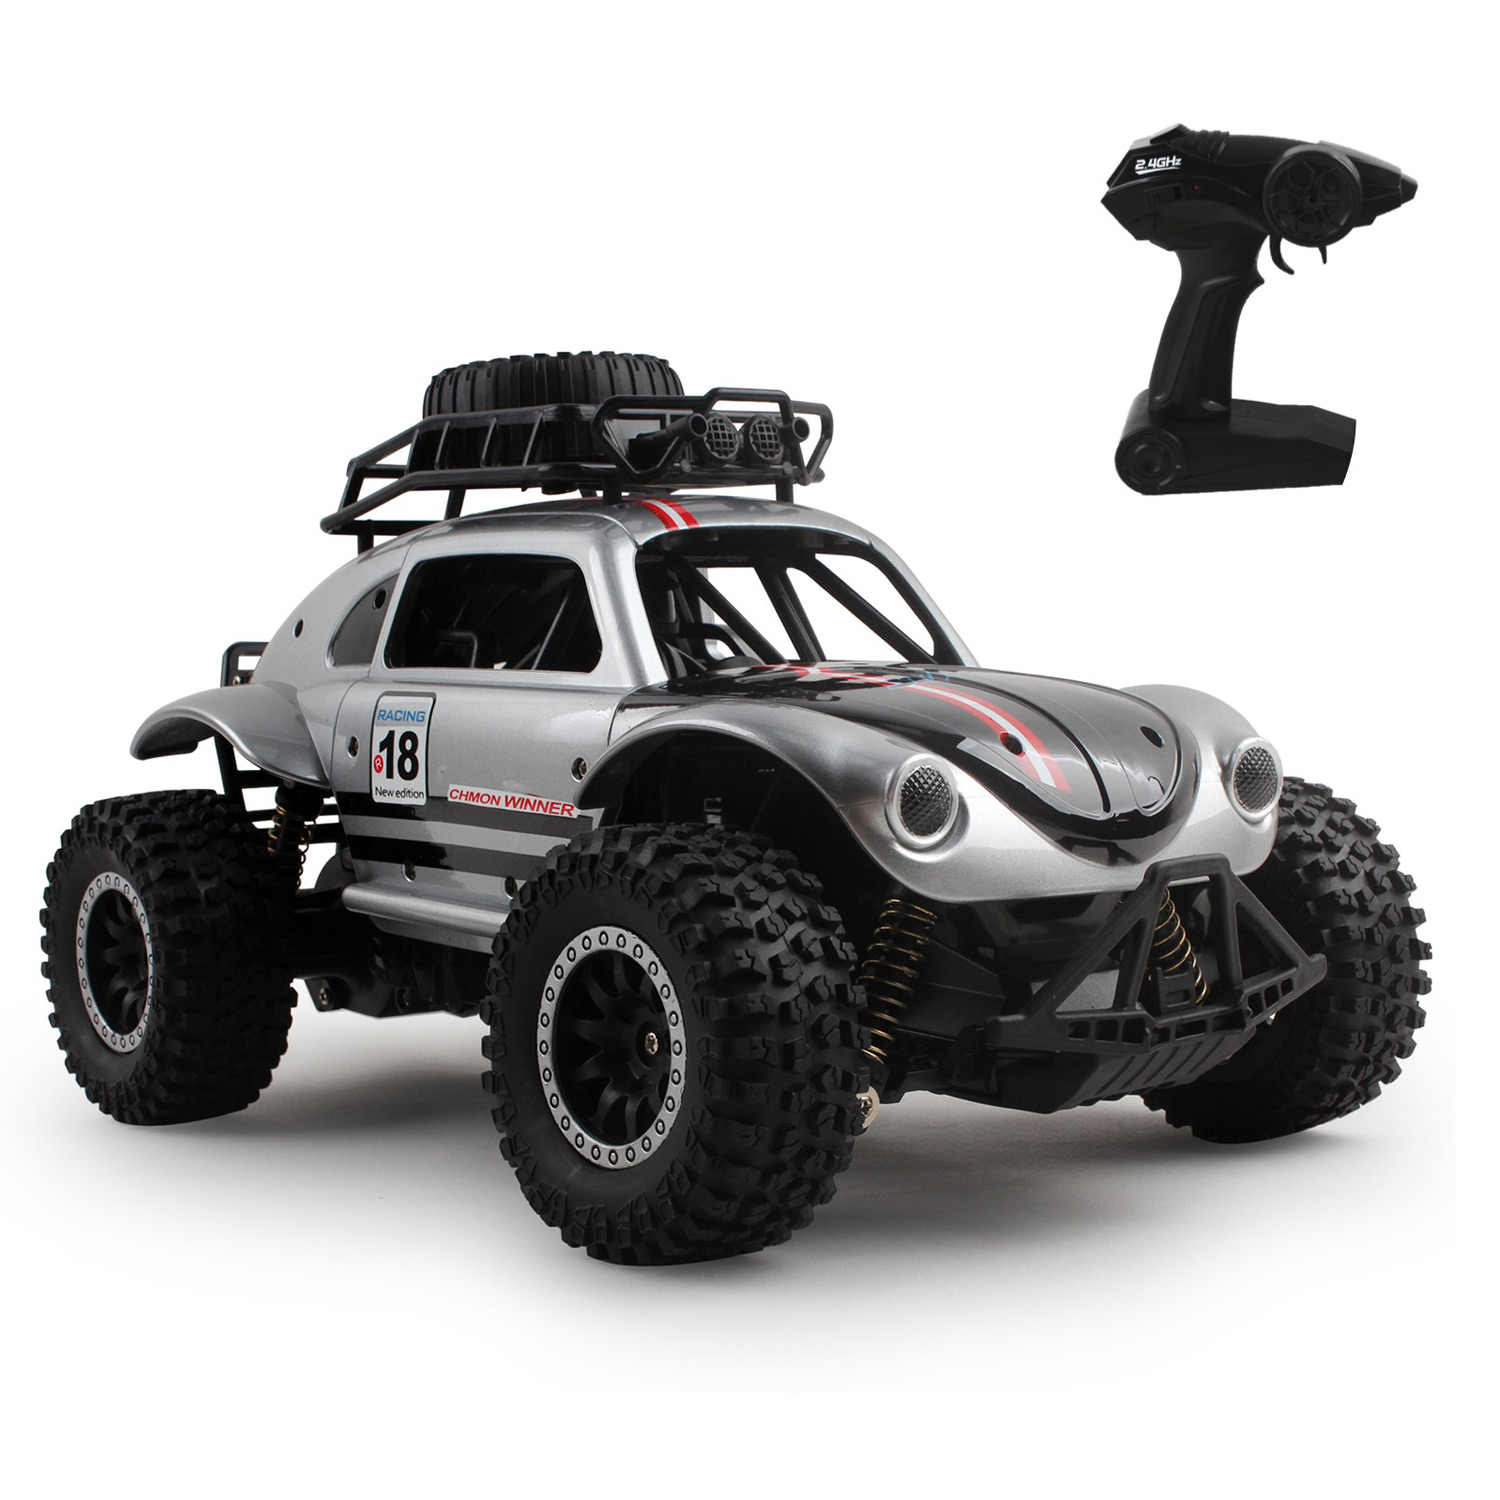 "RC Beetle Truck 23"" 2.4Ghz, 1:14 Scale, High Speed 46km/h Electric Rechargeable Radio Controlled Off-Road Big Wheels Car Children's Bug Remote Control Toy Vehicle Ready To Run RTR Perfect Gift For Kids Toys"